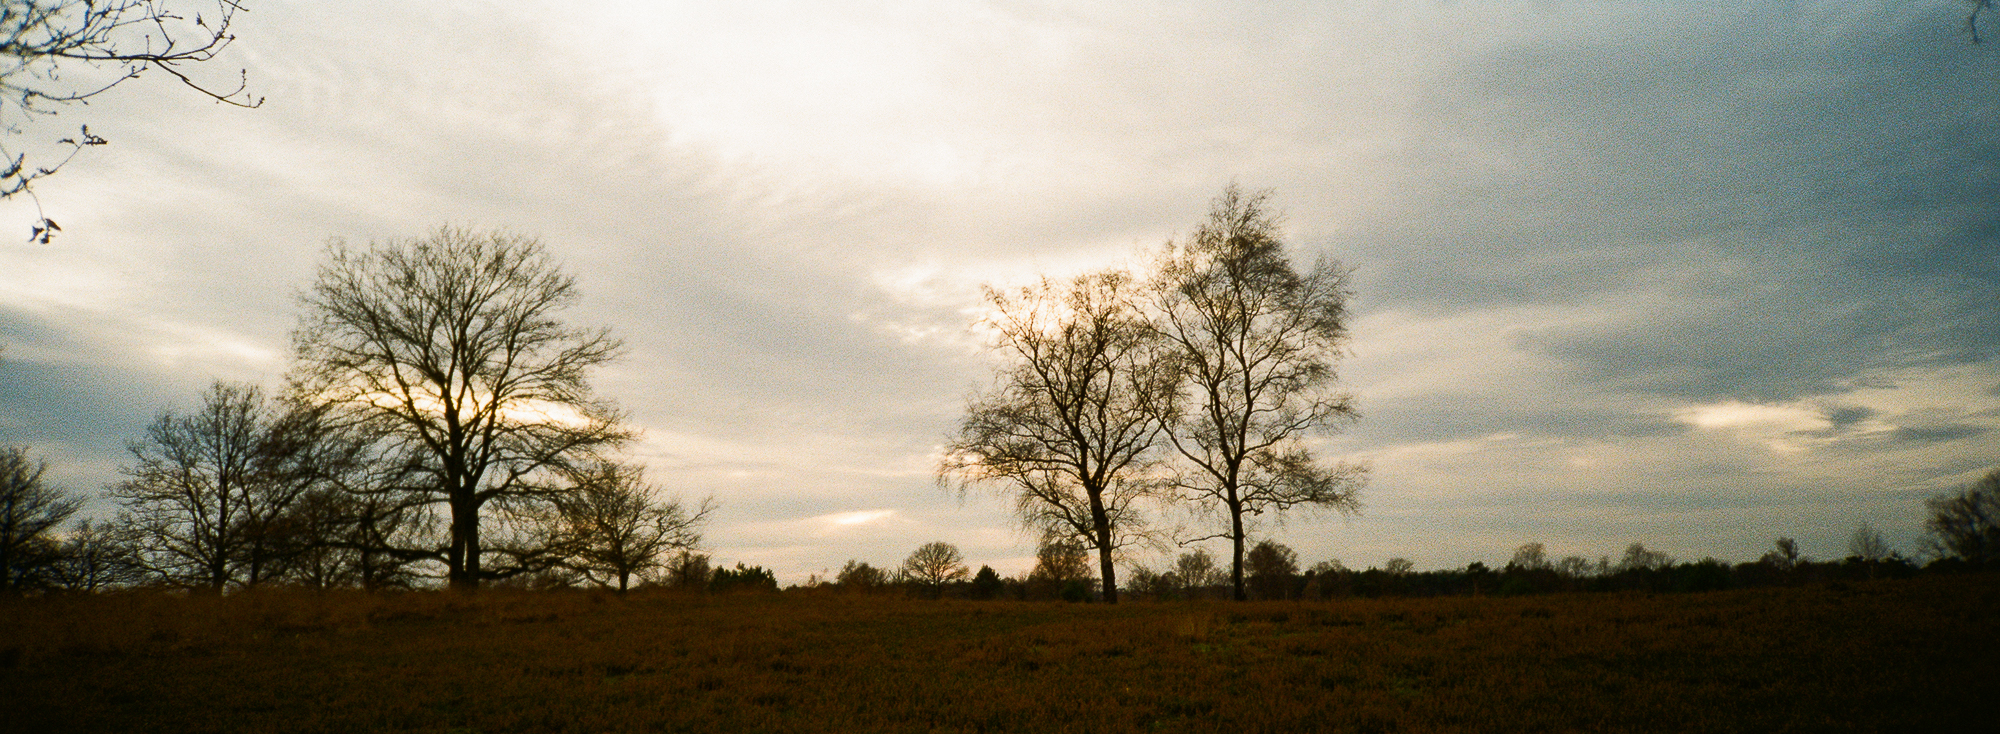 Landscape with trees photographed with Minolta Riva Panorama on Kodak Gold 200